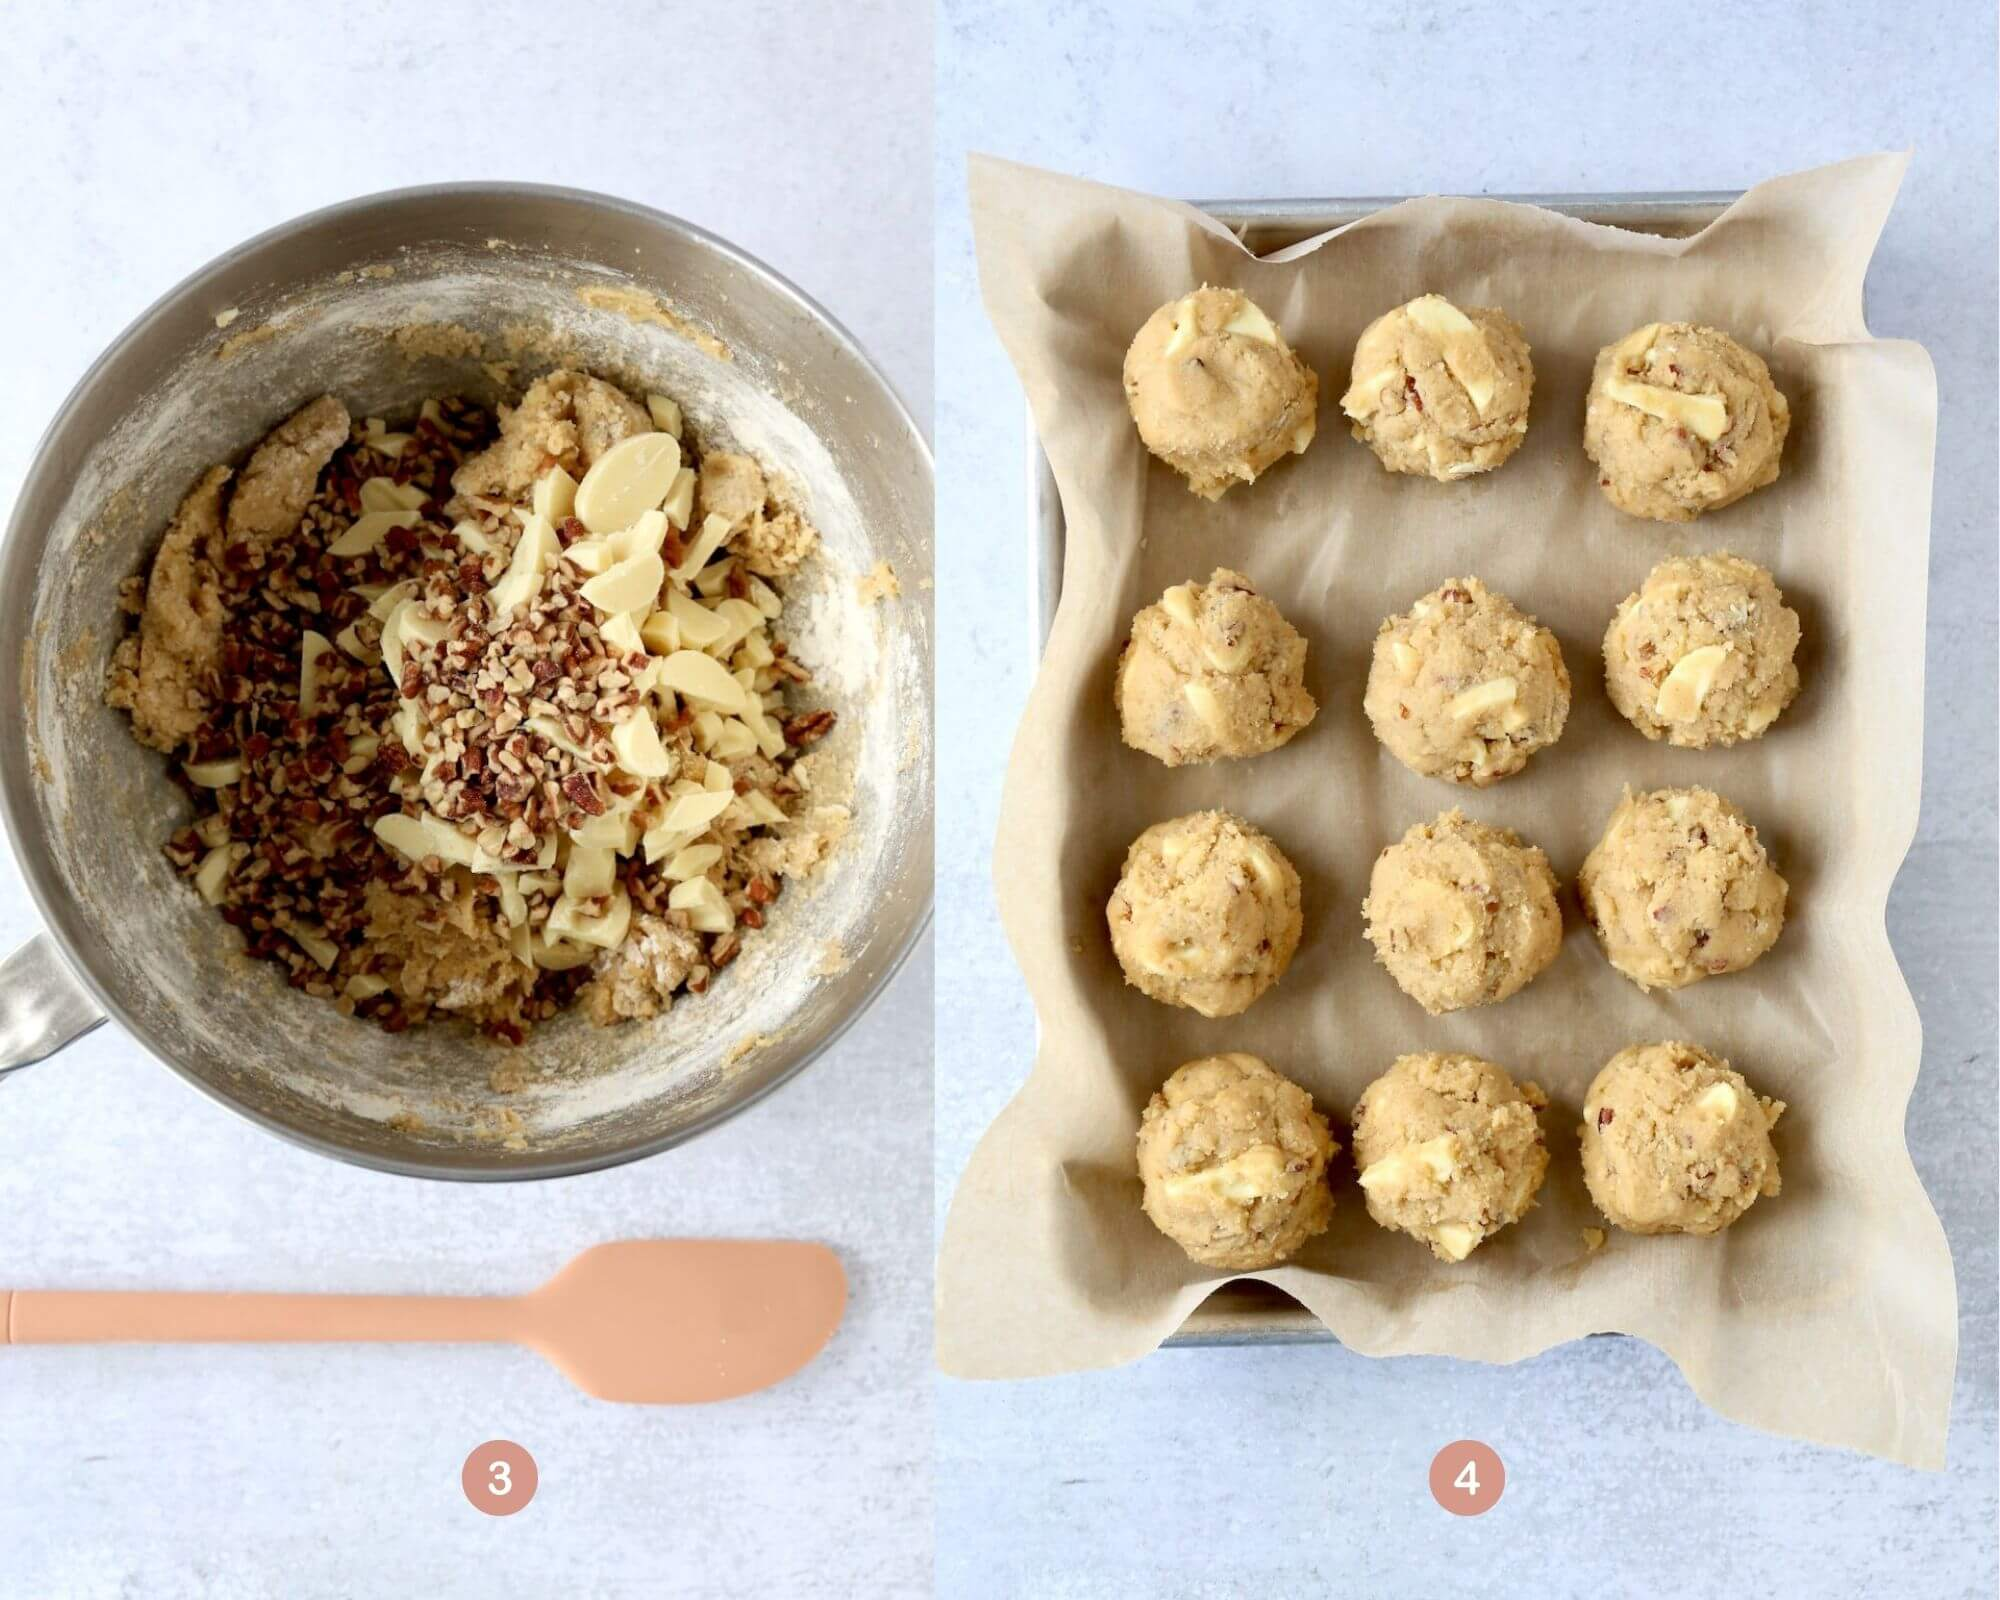 a bowl of cookie dough with pecans and white chocolate chips next to a tray of cookie dough balls